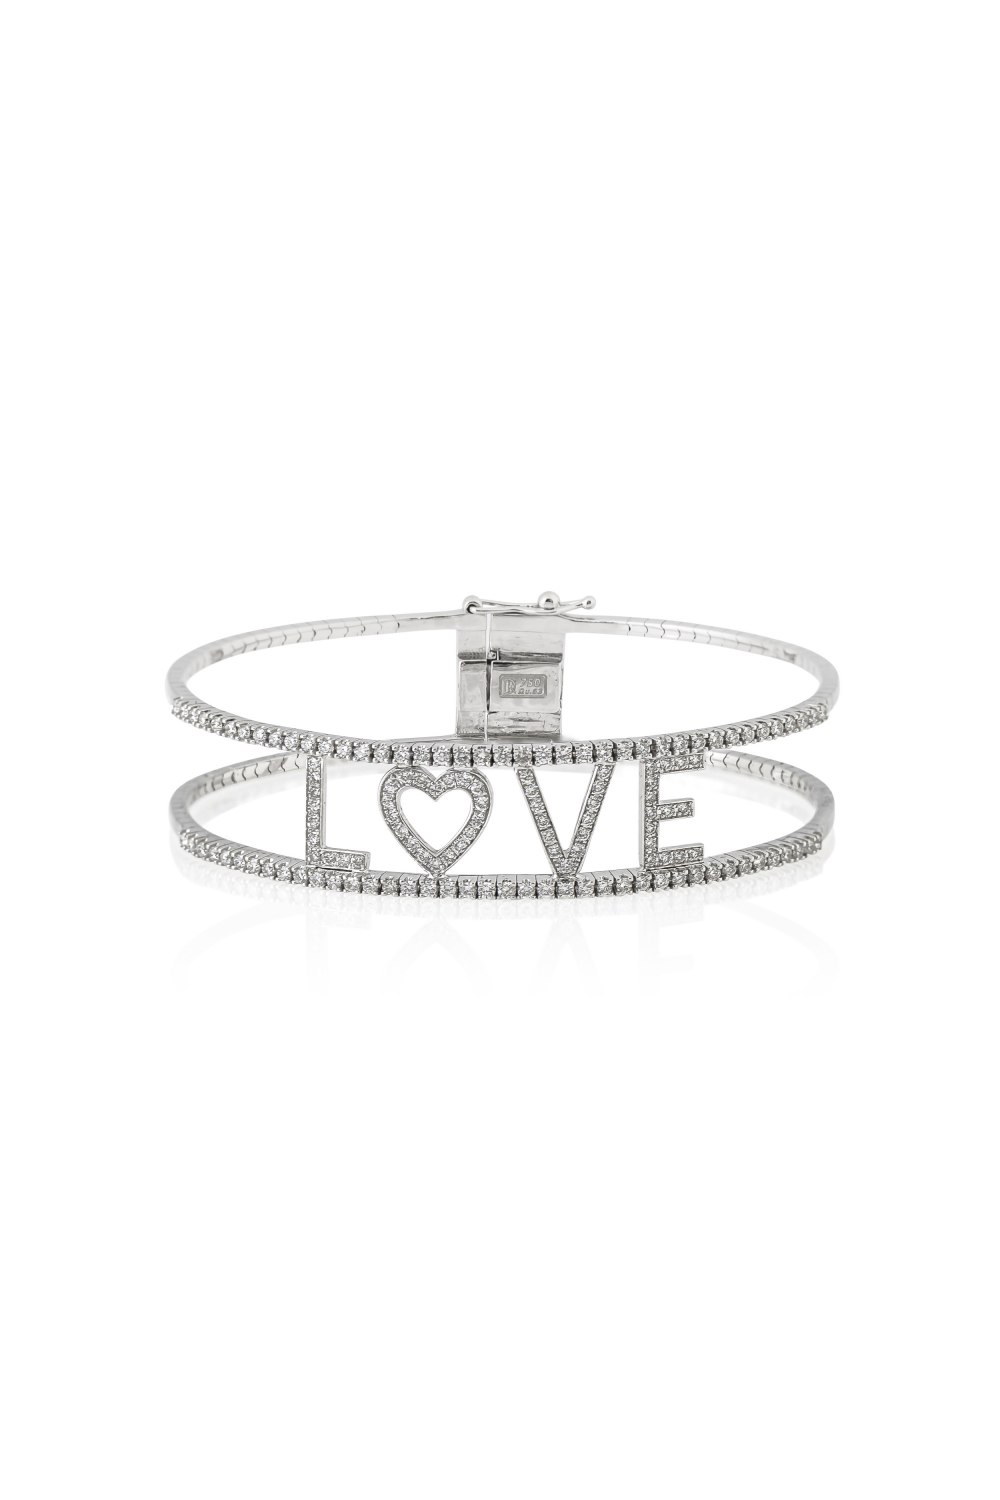 KESSARIS-Love Diamond Bangle Bracelet